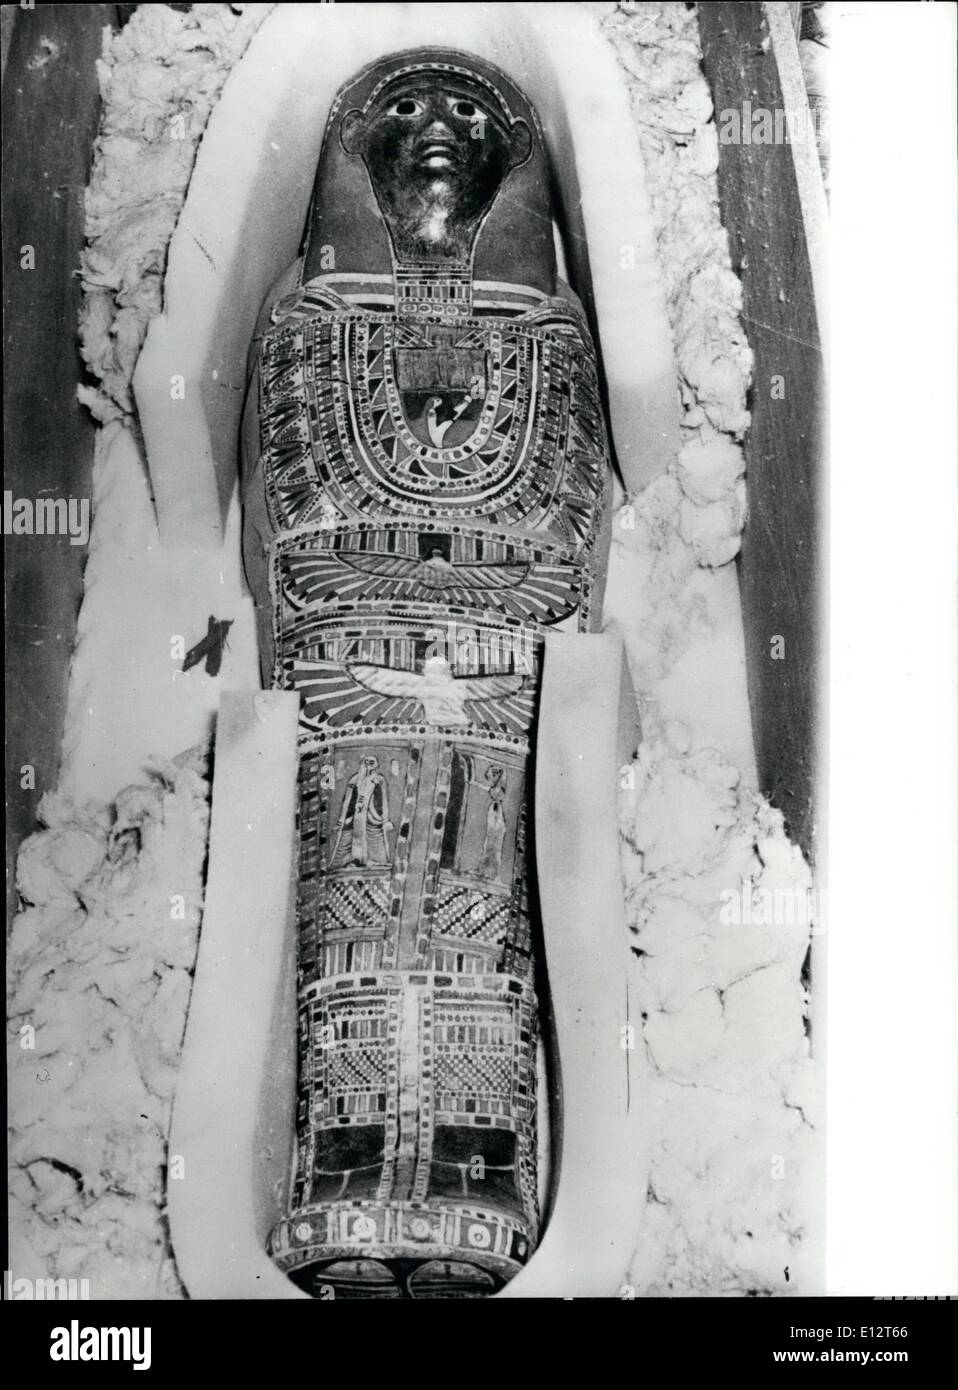 Feb. 25, 2012 - Two ancient Egyptian cemeteries unearthed.: Two Pharaonic Cemeteries near Kom Ombo Temple Upper Egypt, have recently bnn unearthed. They were found comprising some 250 graves of a number of ancient Egyptian Deities. Digging work started since the year 1965. Among the graves unearthed were six of sacred Alligators which was the deity of Kom Omb Temple. Sharing this sacred Alligator was the sacred Vulture who was also worshipped by the ancient Egyptians. An alligator egg was discovered in these cemeteries as well as a number of the sacred snake and also some mummified Deers - Stock Image